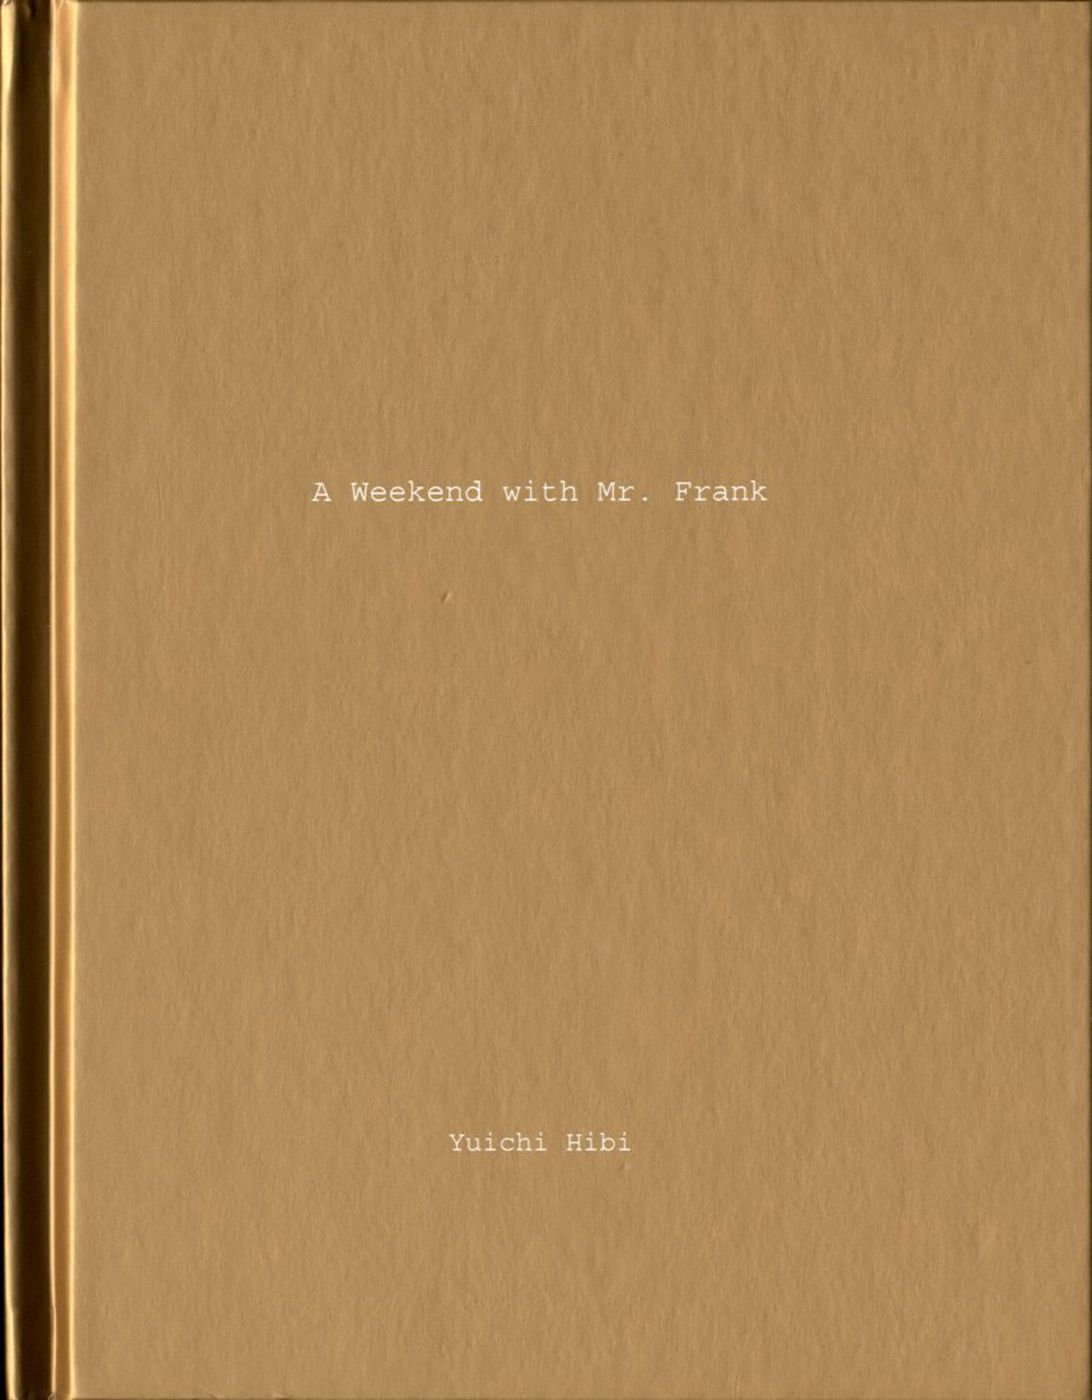 Yuichi Hibi: A Weekend with Mr. Frank (One Picture Book #35), Limited Edition (with Print)